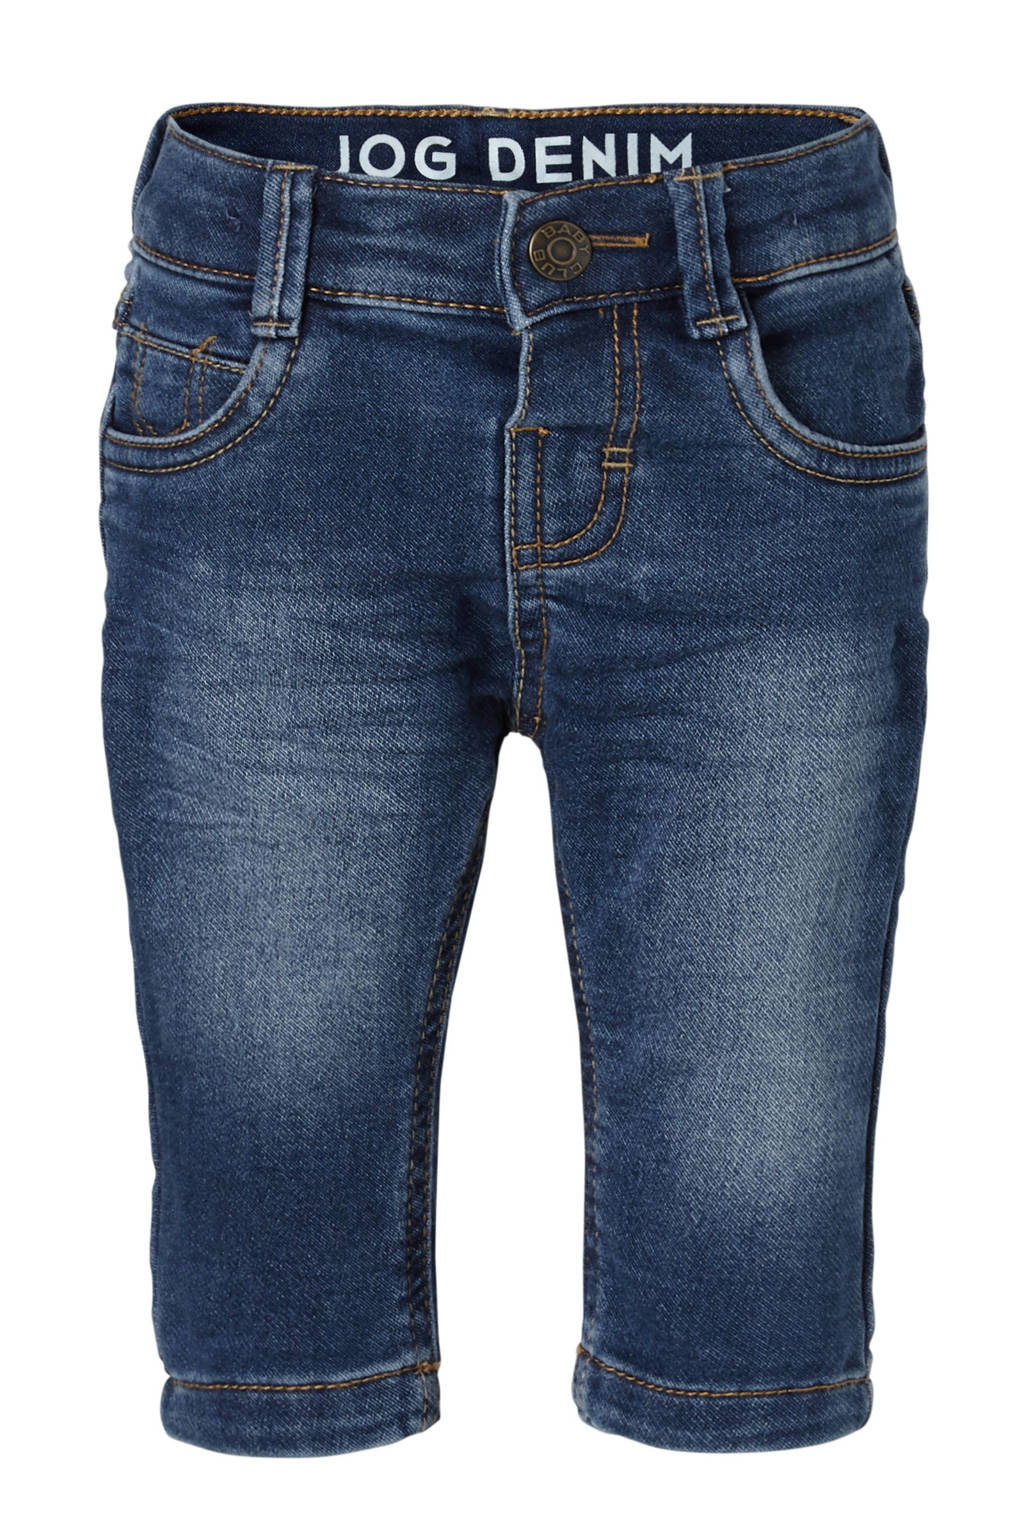 C&A Baby Club jog denim, Dark denim